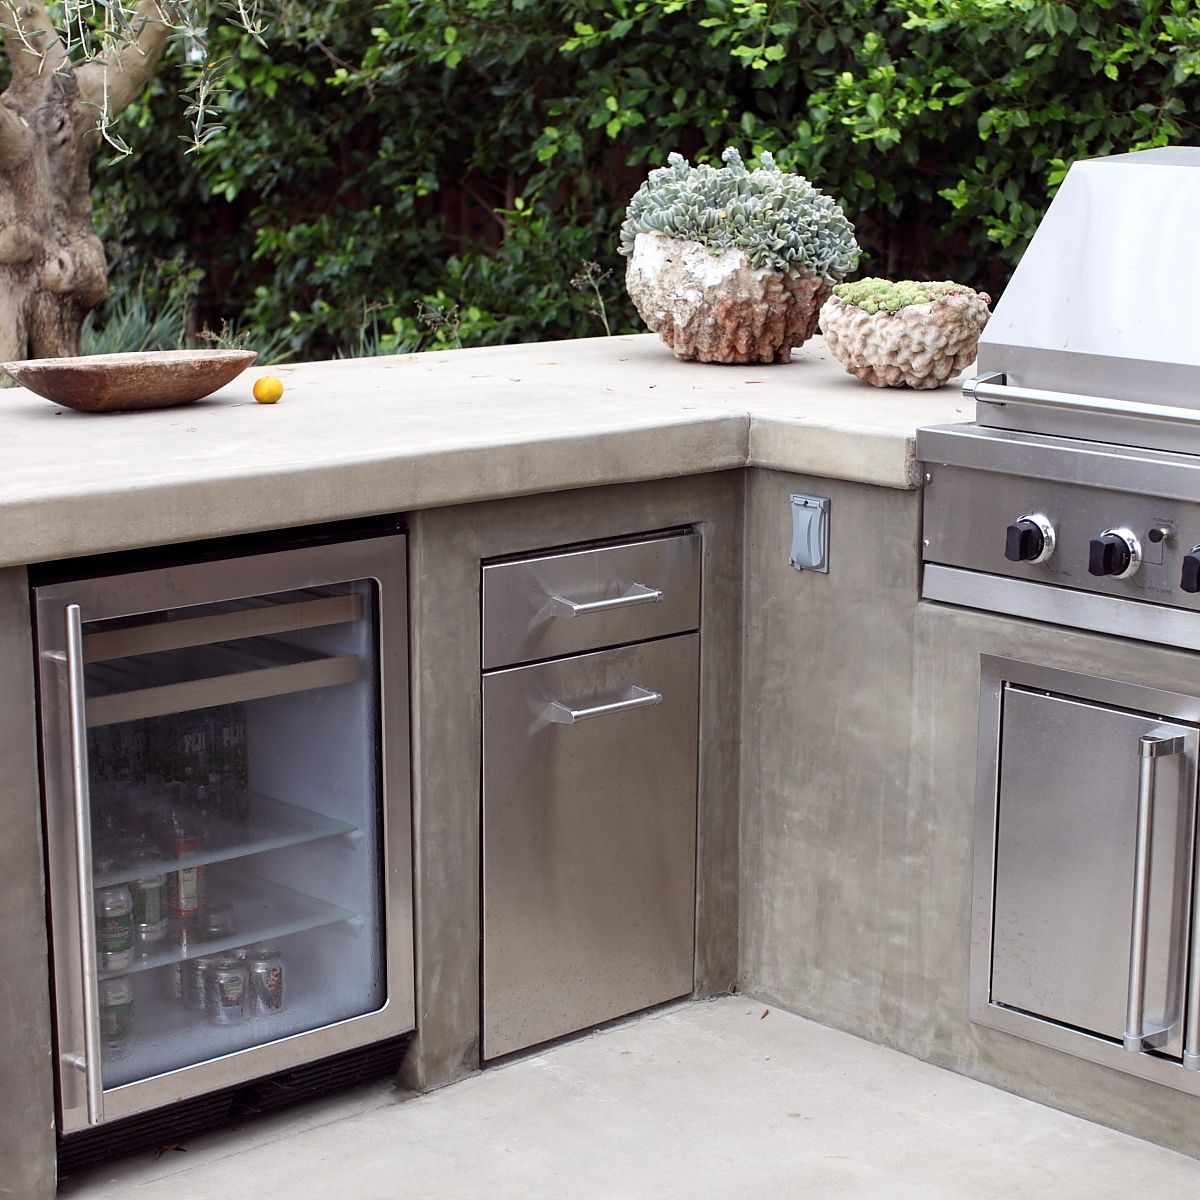 An outdoor fridge is an essential for a high end built in for Backyard built in bbq ideas